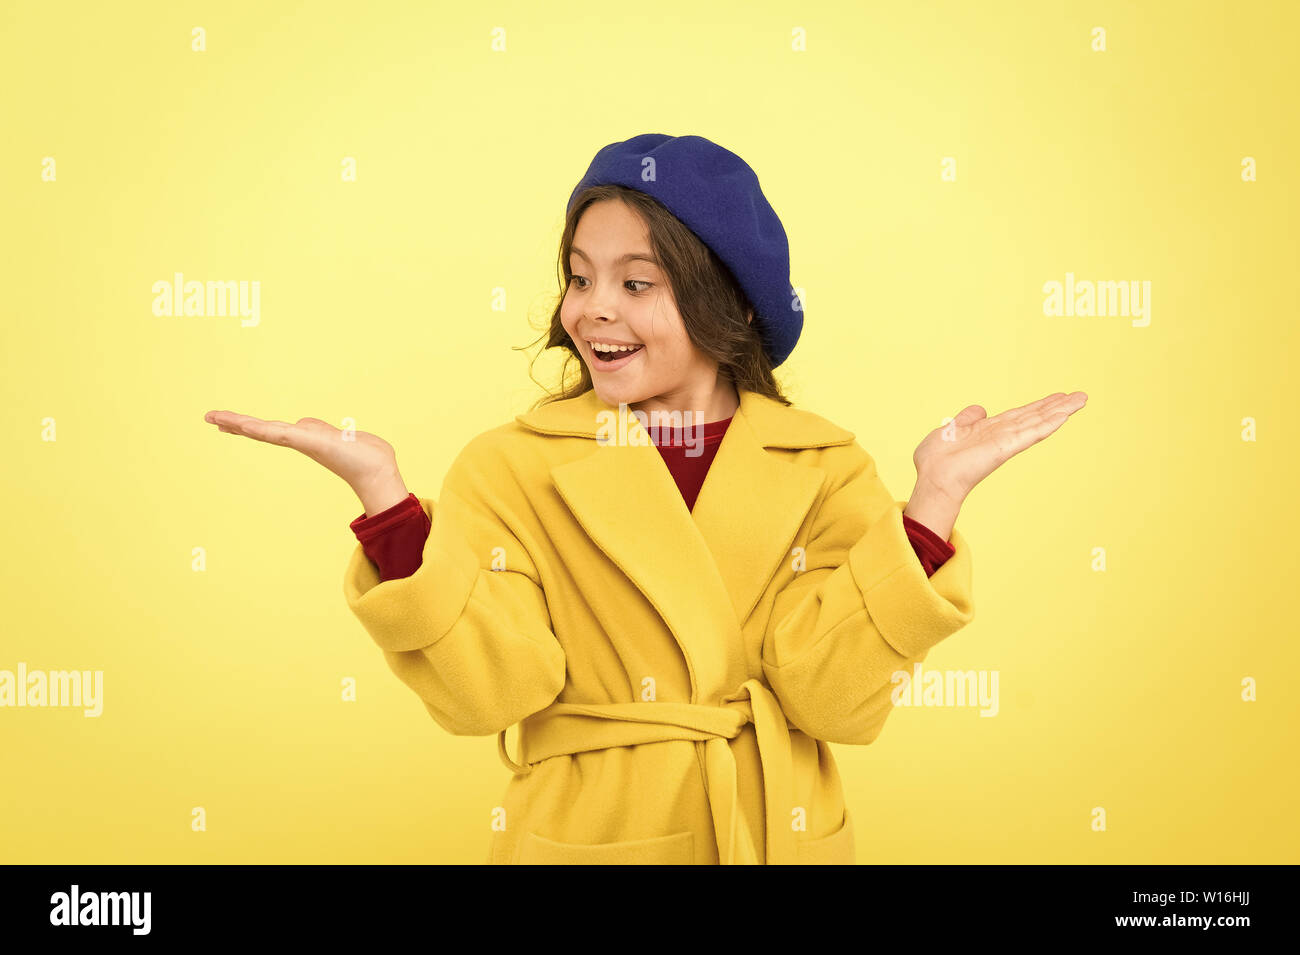 Child promoting something yellow background copy space. Place for ad advertisement. Girl show open palm. Advertising product. Look at this. Advertisement launching product. Advertisement concept. - Stock Image